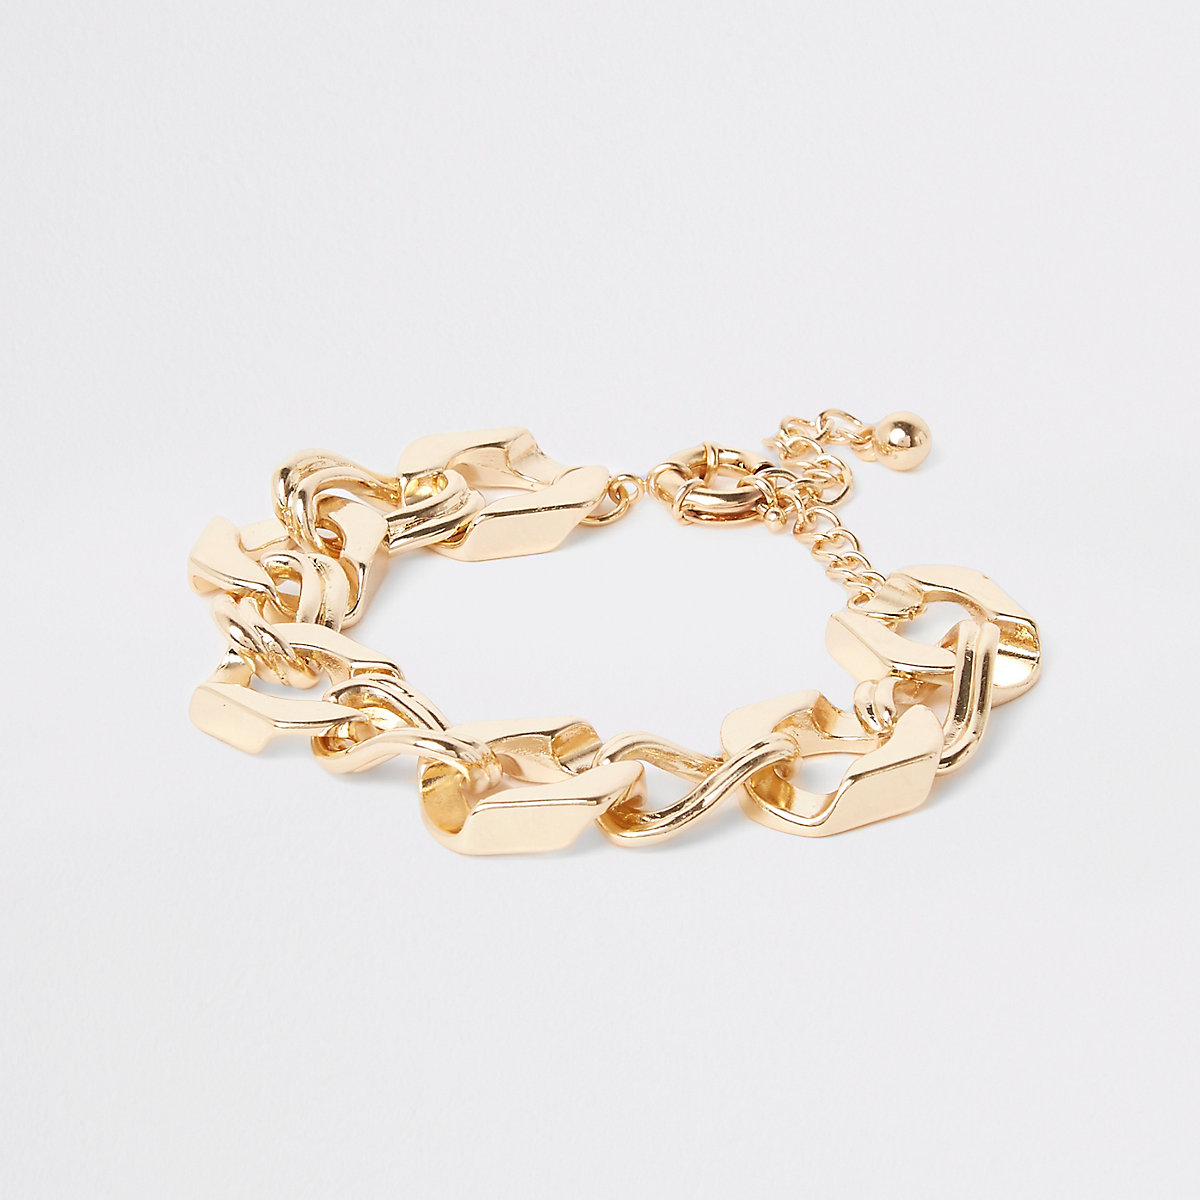 Gold color chunky biker chain bracelet